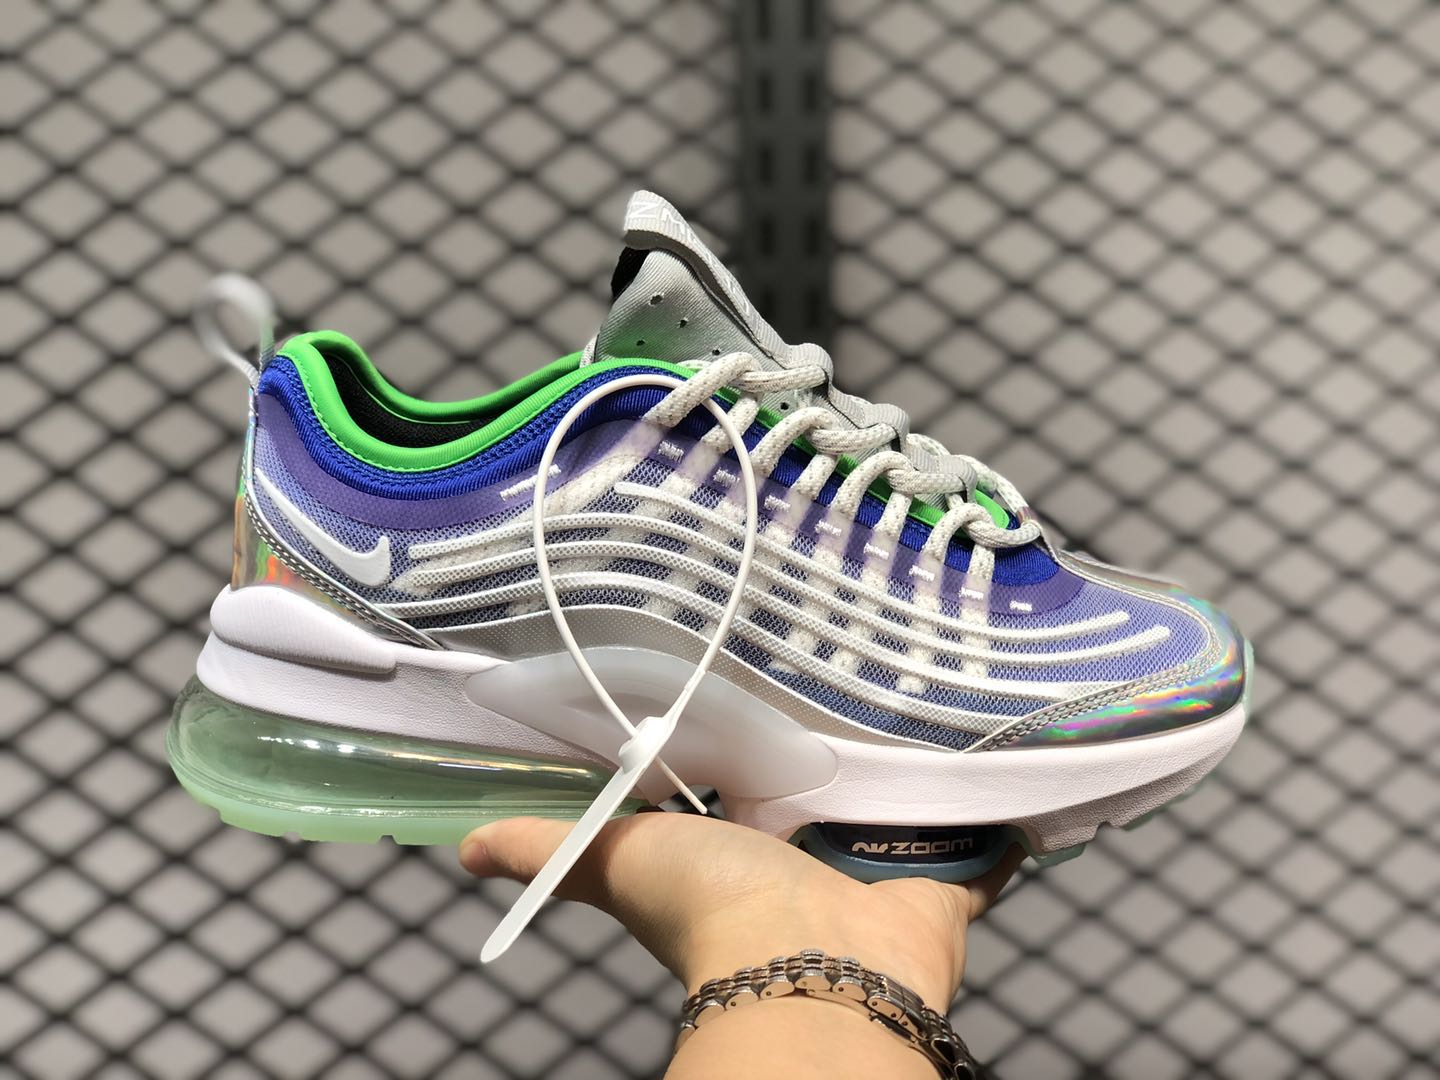 Nike Air Max Zoom 950 Af1-TYpe White/Blue-Green For Sale ...